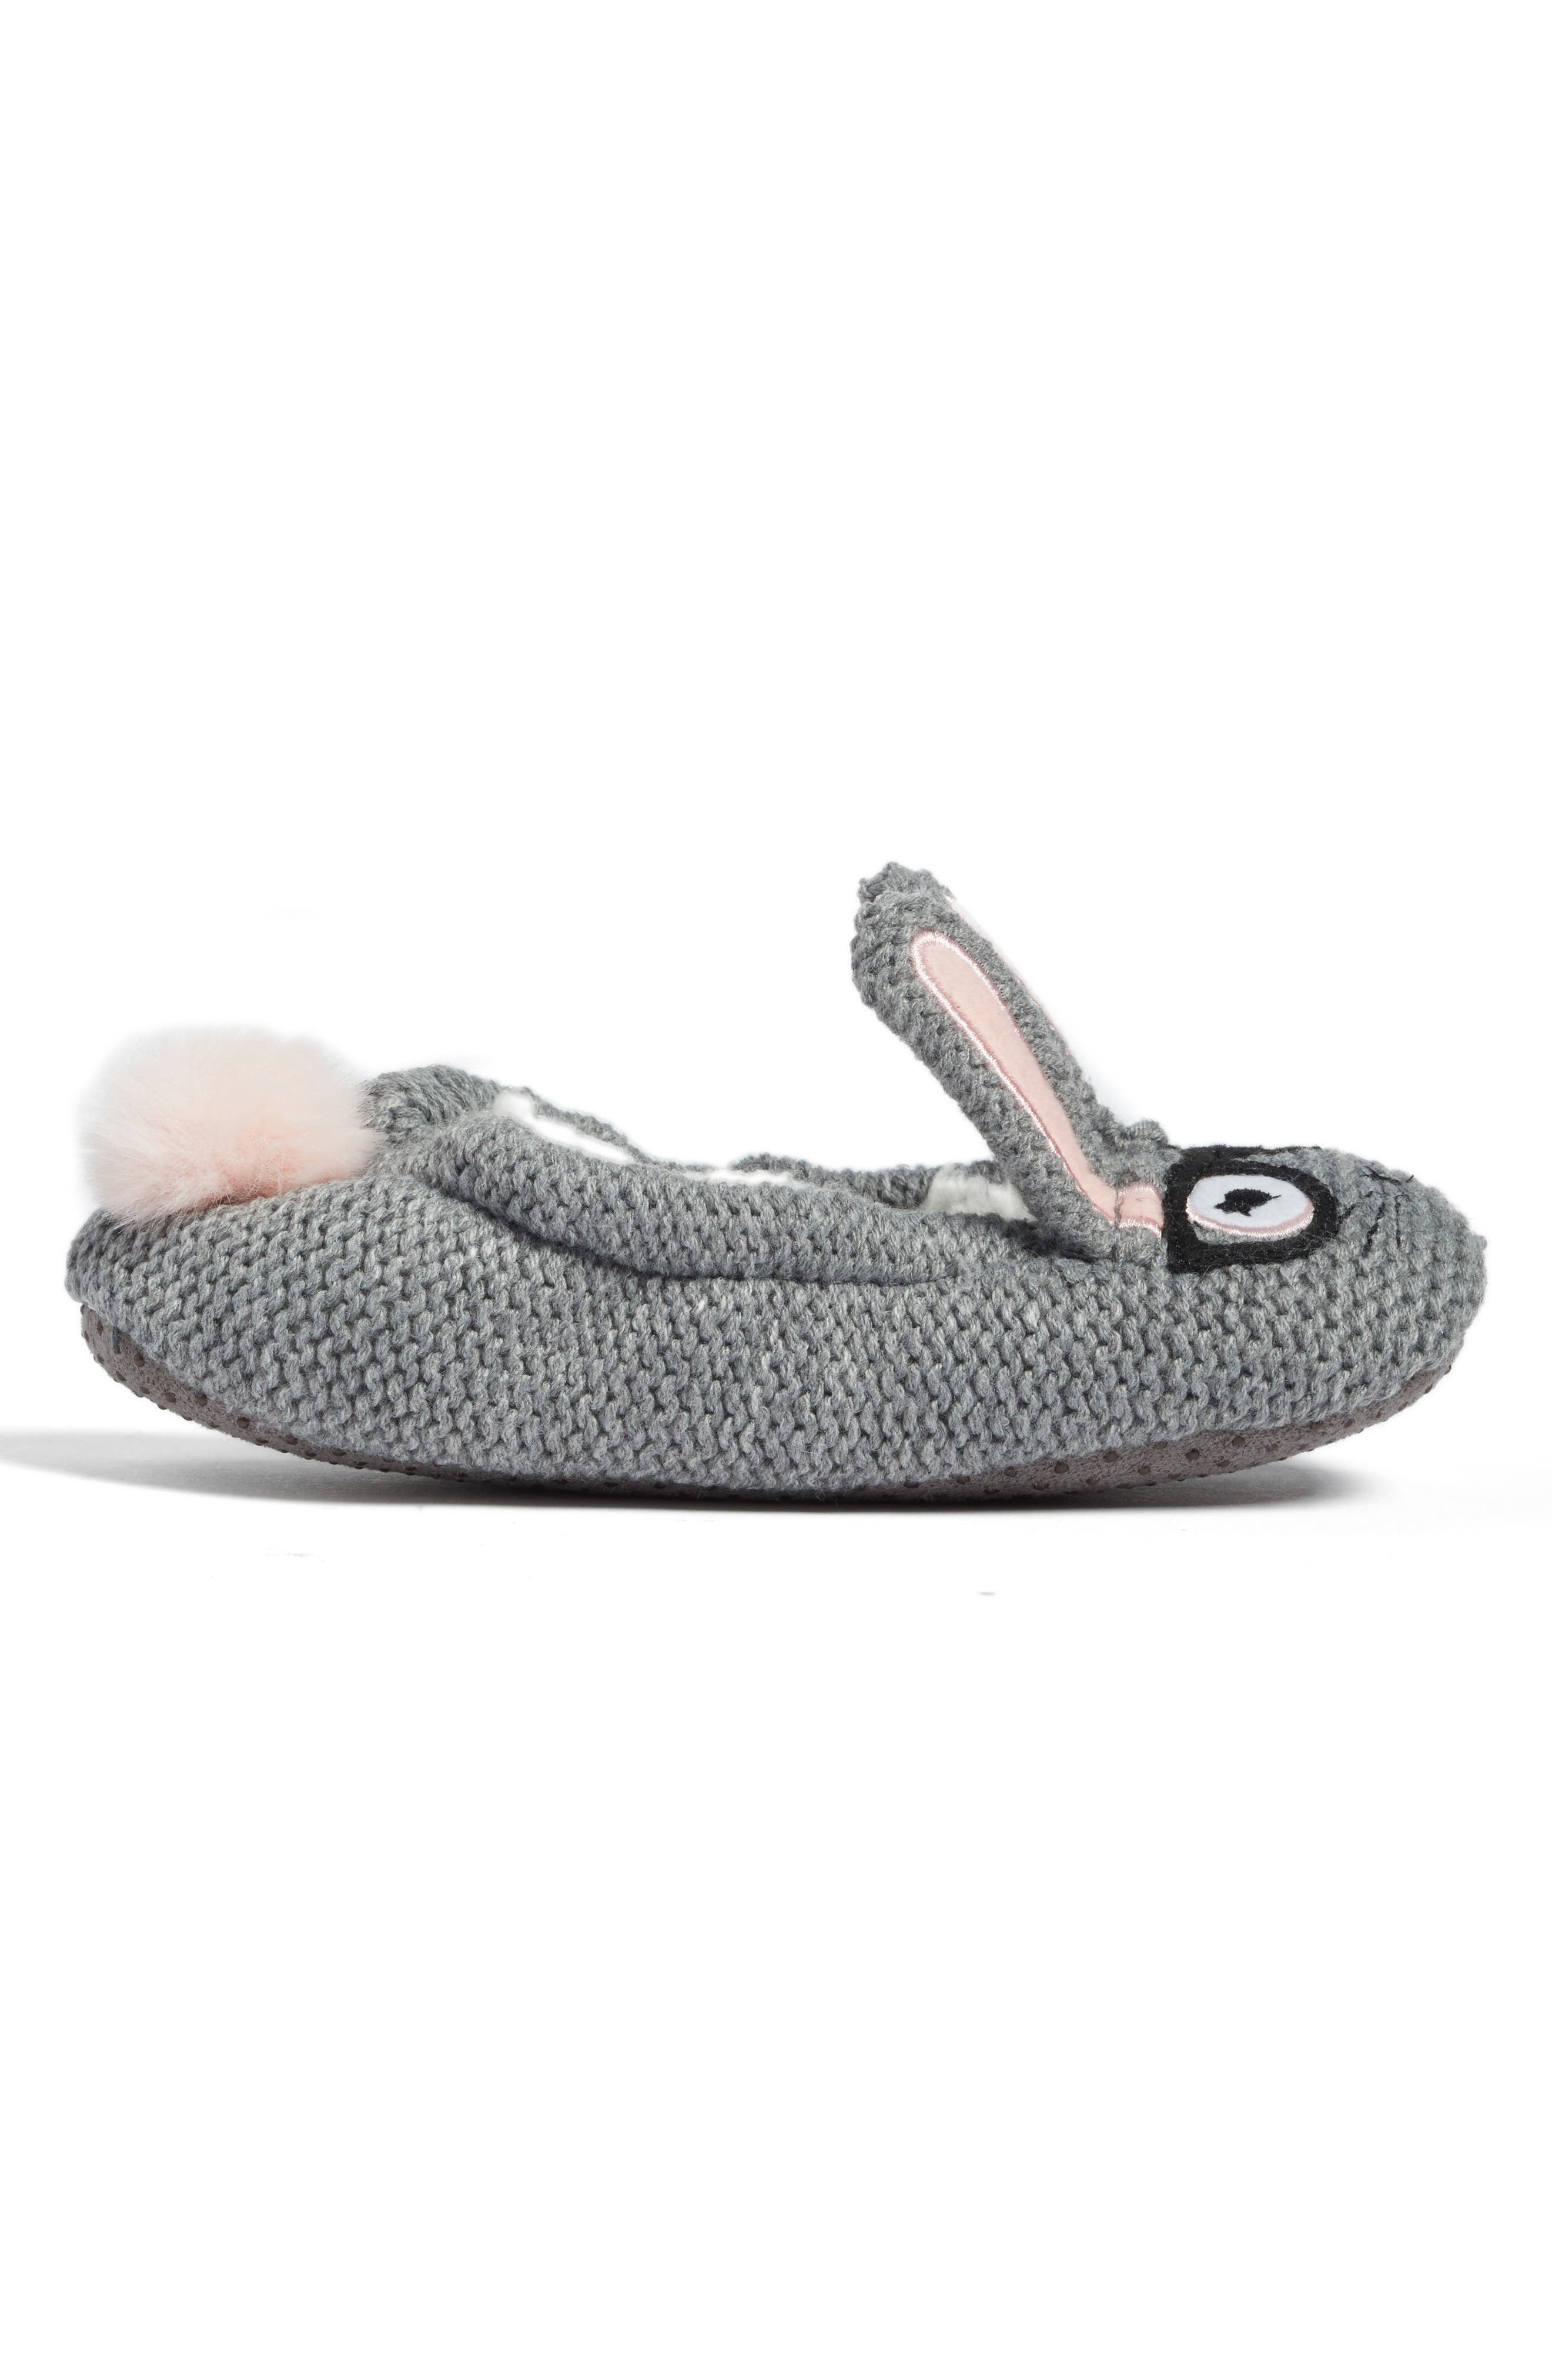 'Critter' Slipper,                             Alternate thumbnail 3, color,                             020